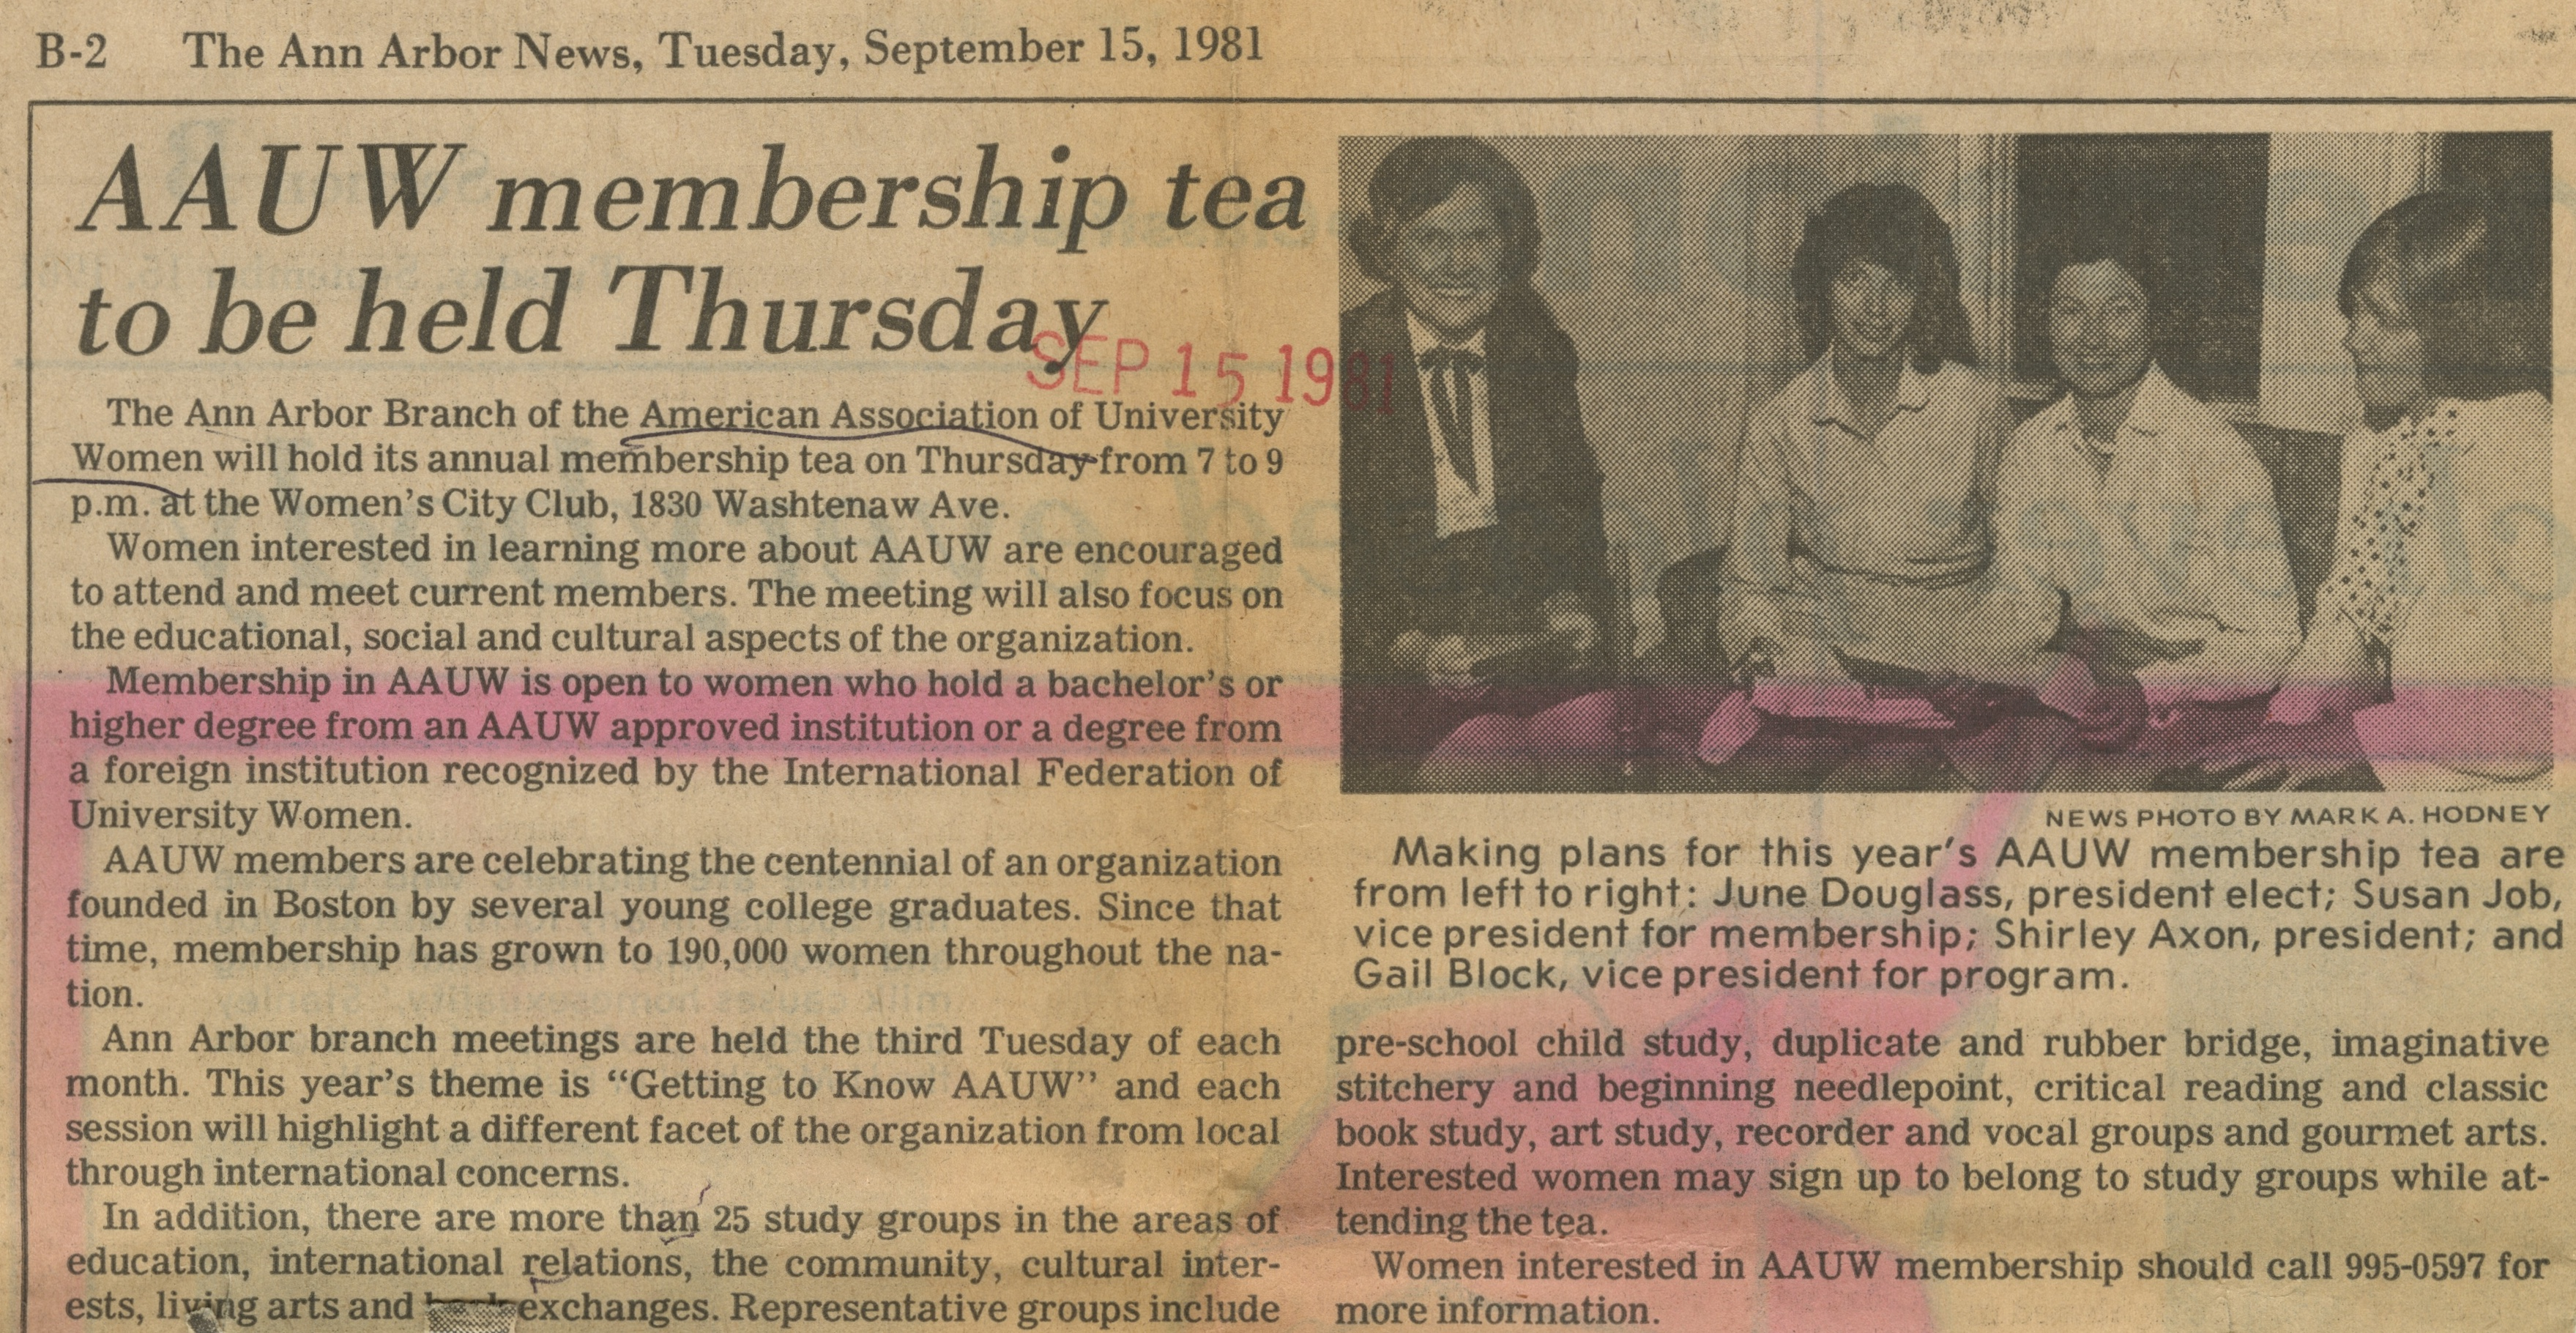 AAUW Membership Tea to be Held Thursday image